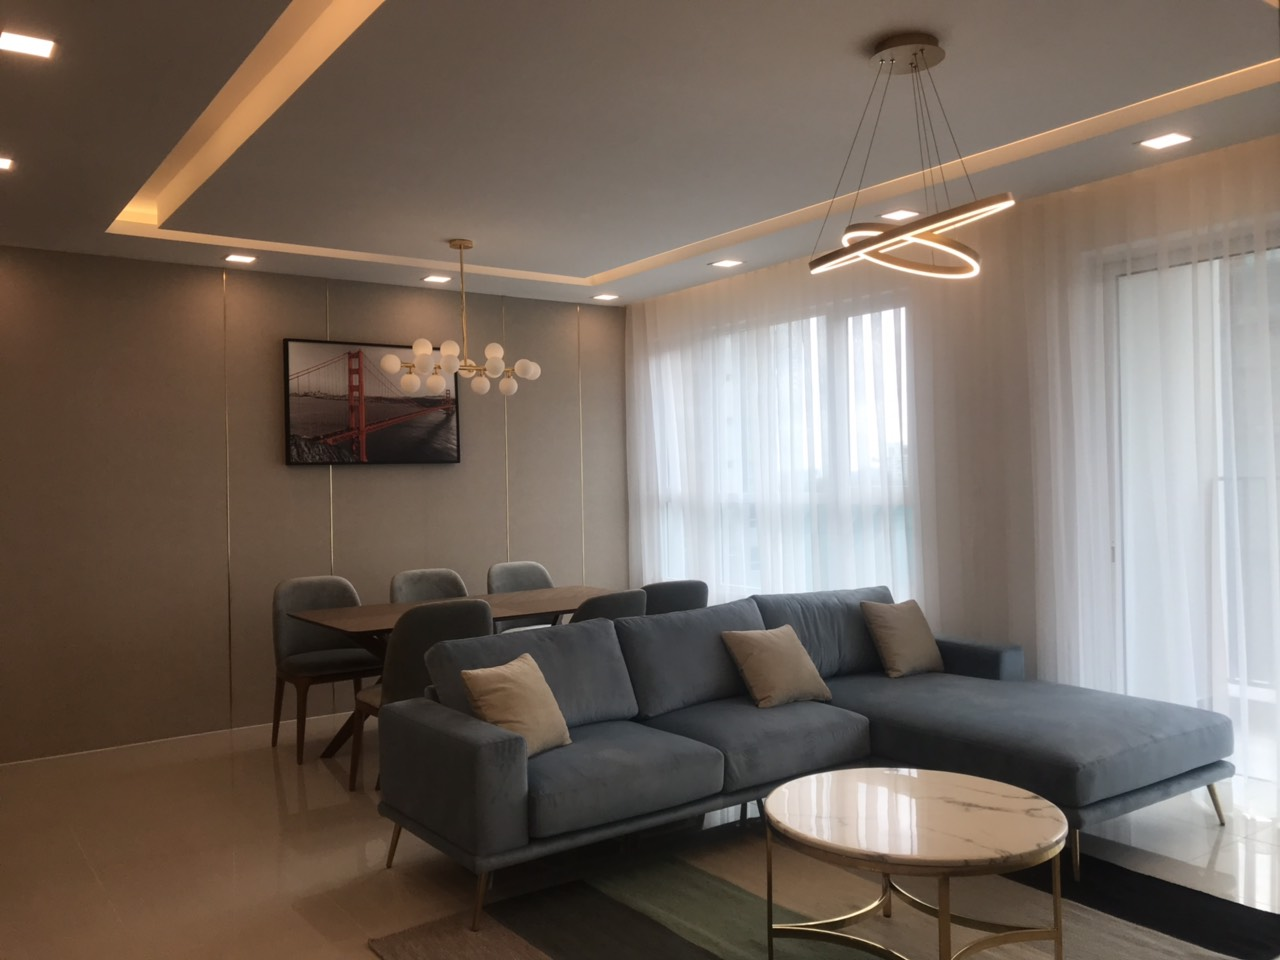 apartment for rent in district 2 hcmc vista verde apartment for rent in district 2 hcmc D221565(8)